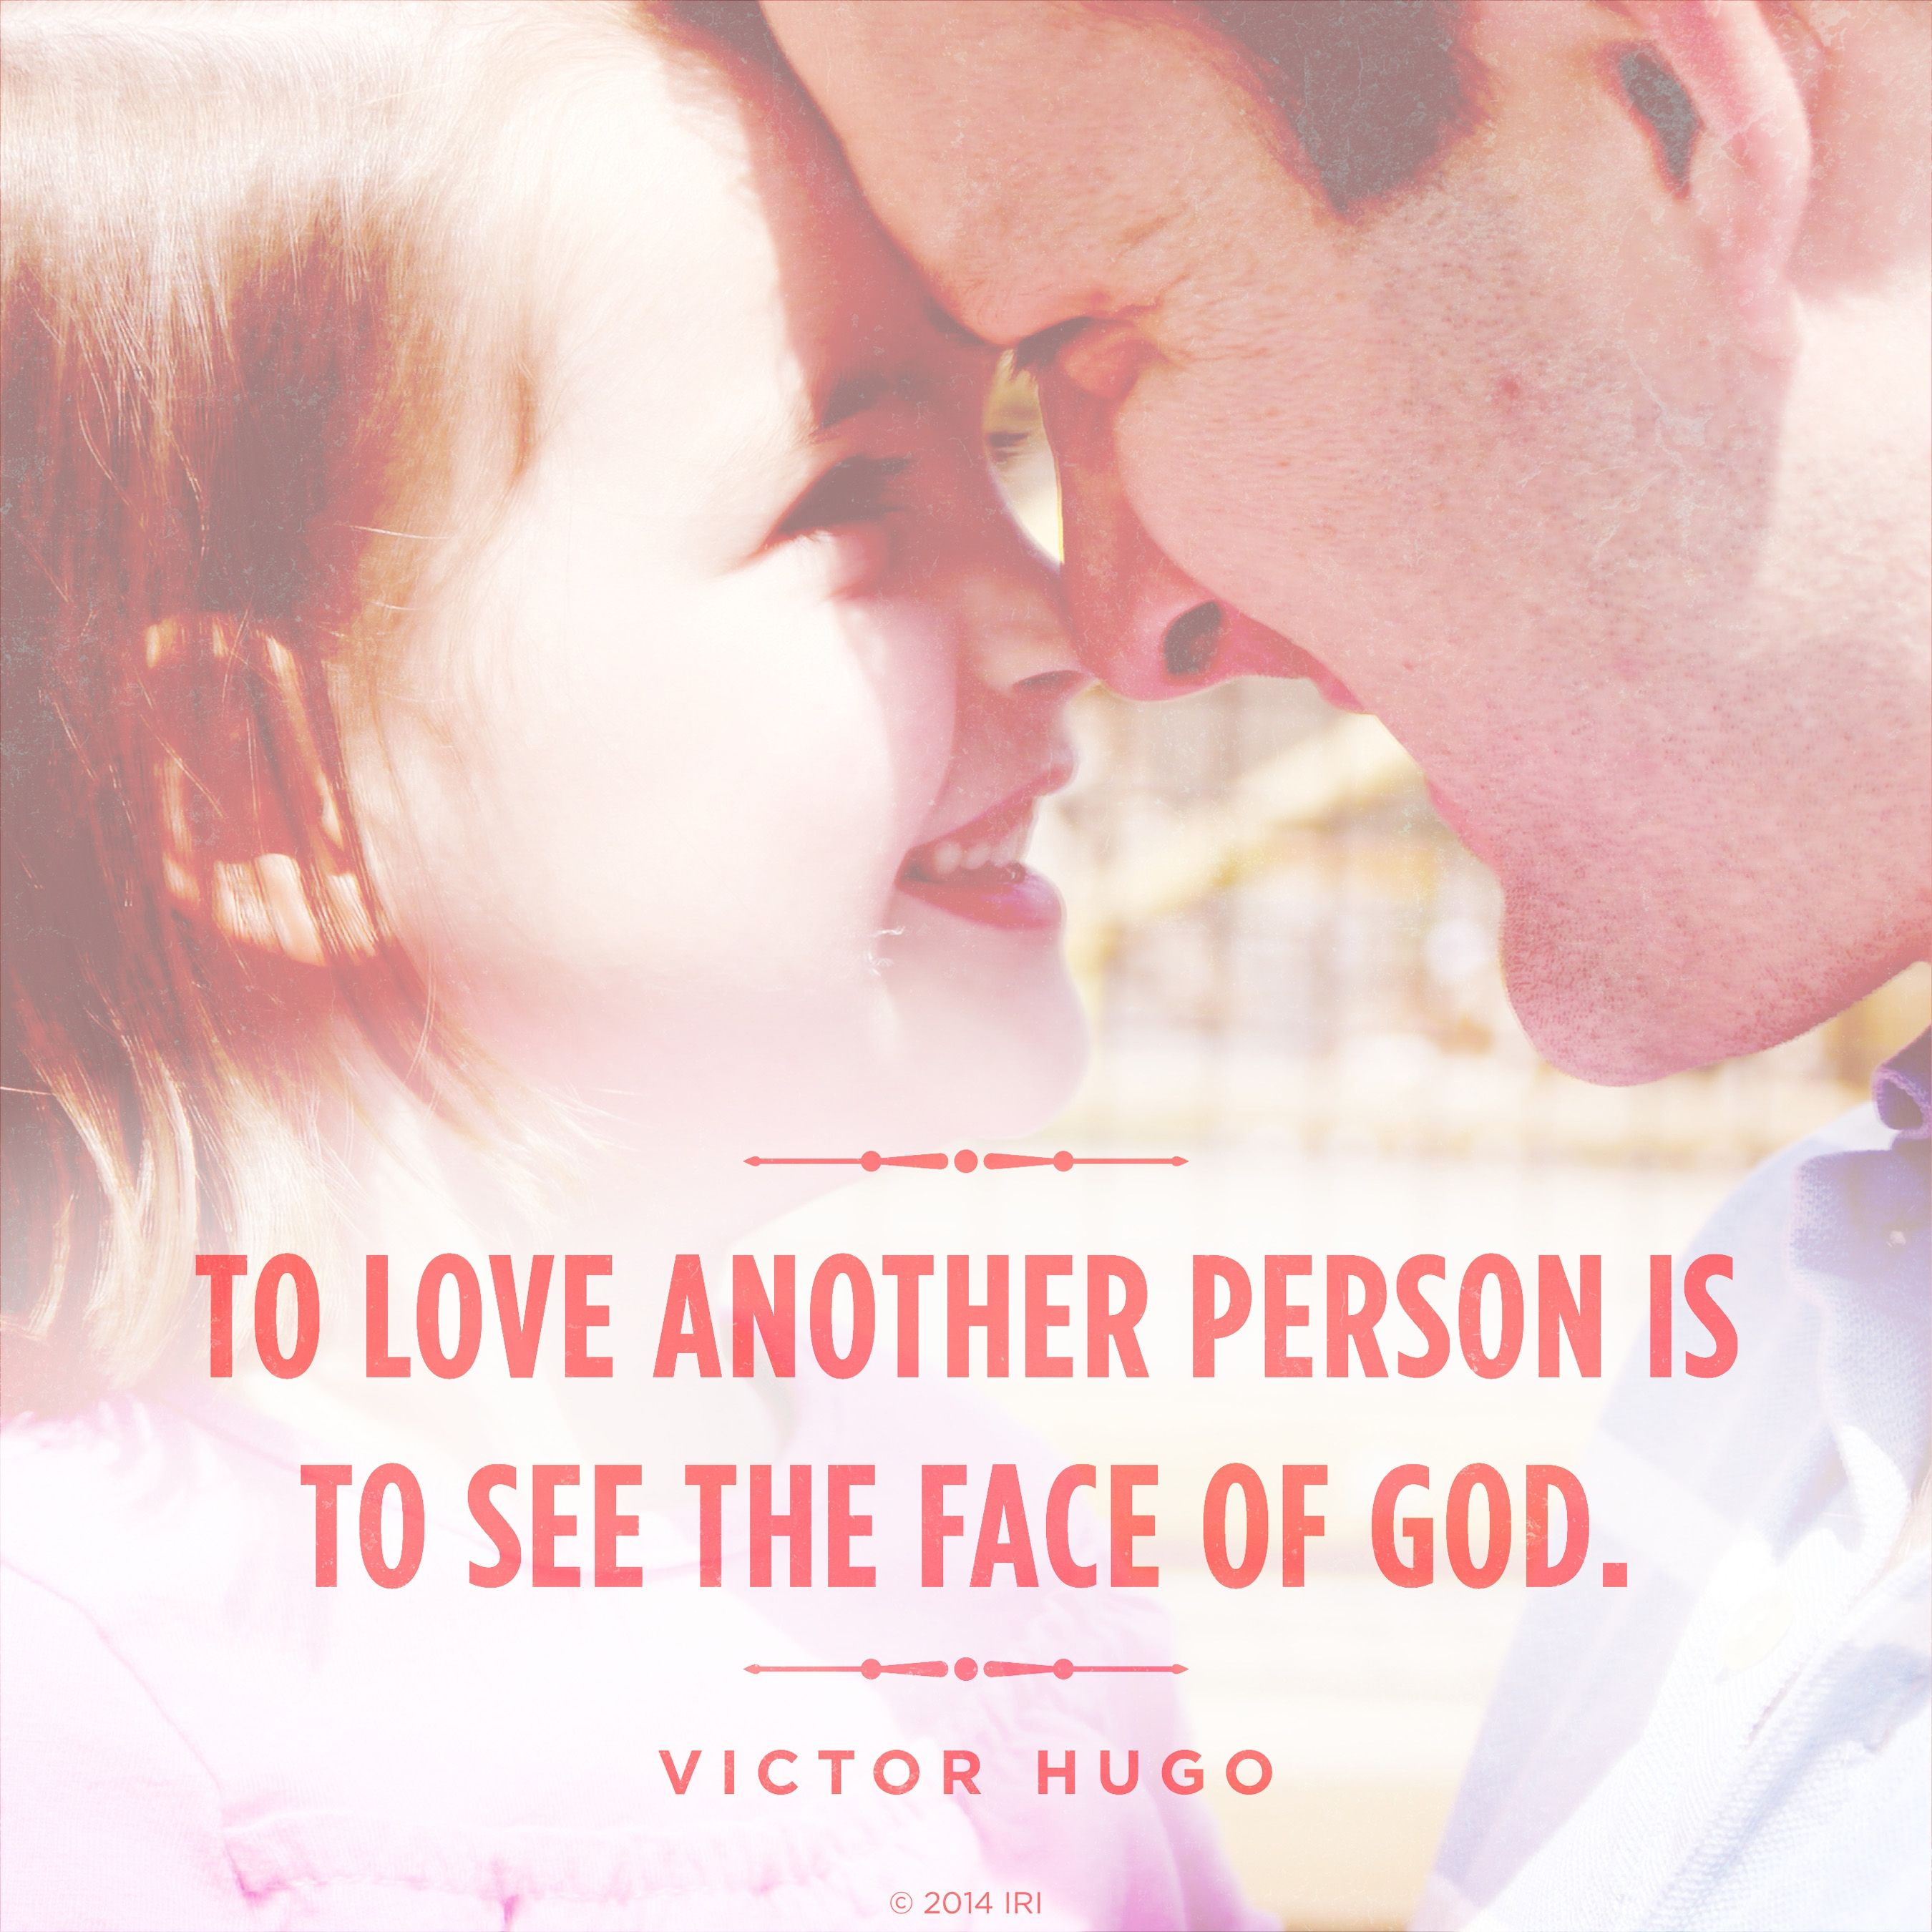 """""""To love another person is to see the face of God.""""—Victor Hugo, Les Misérables"""